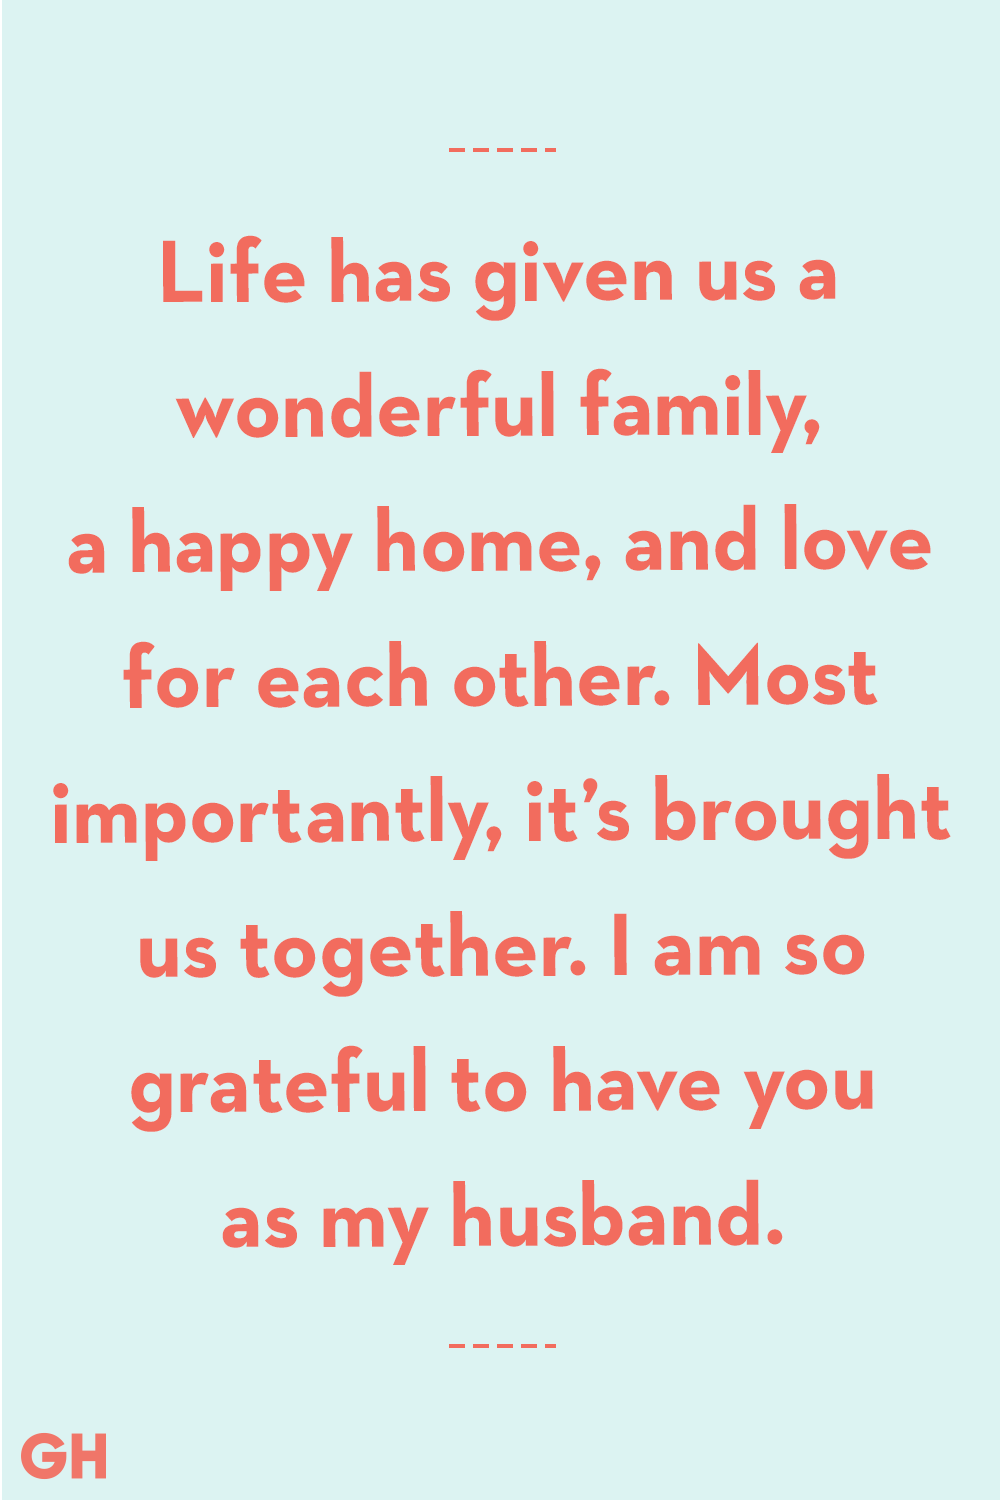 Father's Day Quotes From Wife Life Brought Us Together